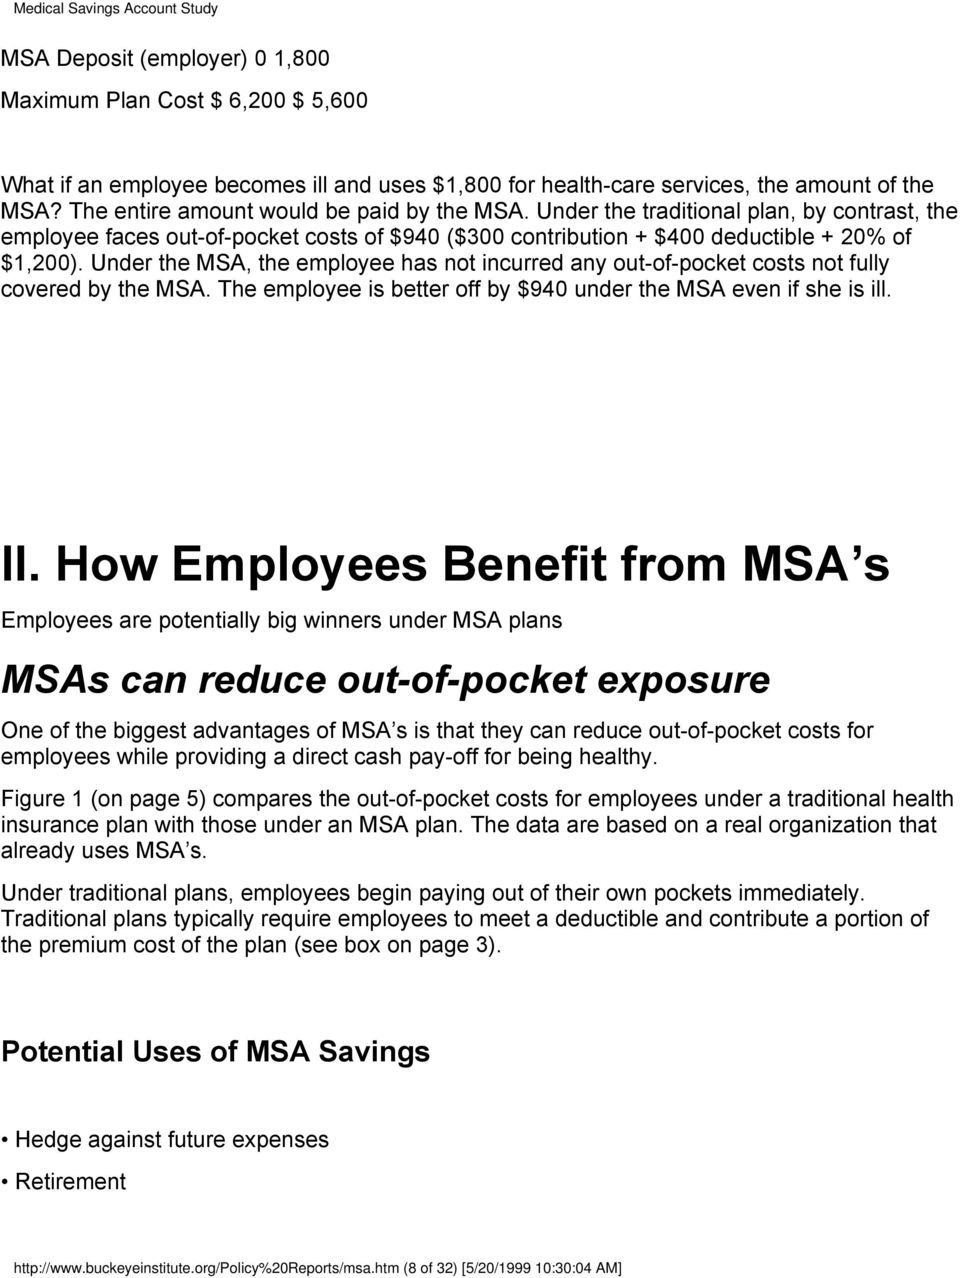 Under the MSA, the employee has not incurred any out-of-pocket costs not fully covered by the MSA. The employee is better off by $940 under the MSA even if she is ill. II.